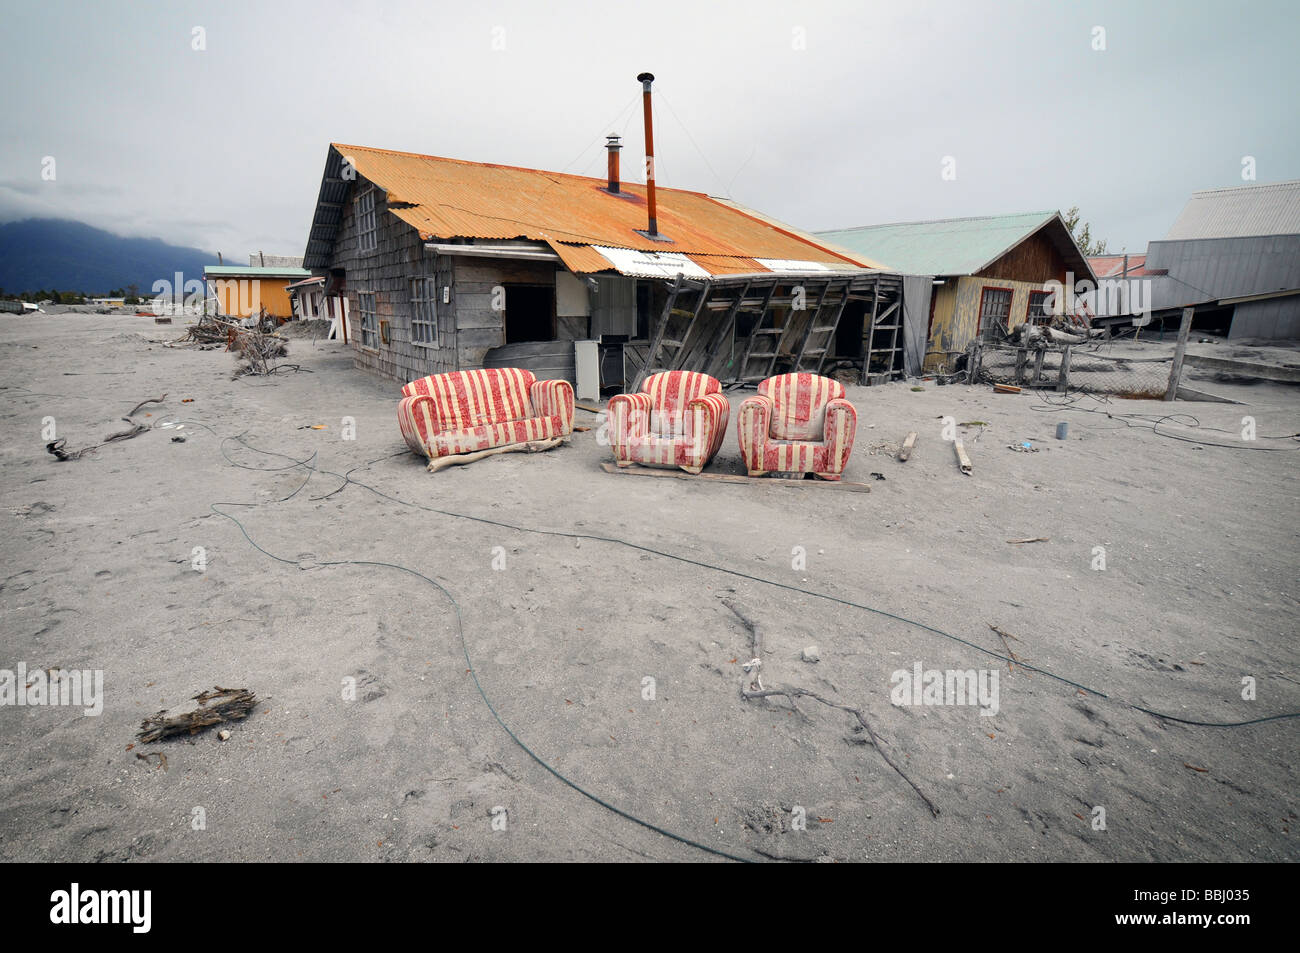 The destroyed town of Chaiten after a volcanic eruption - Stock Image